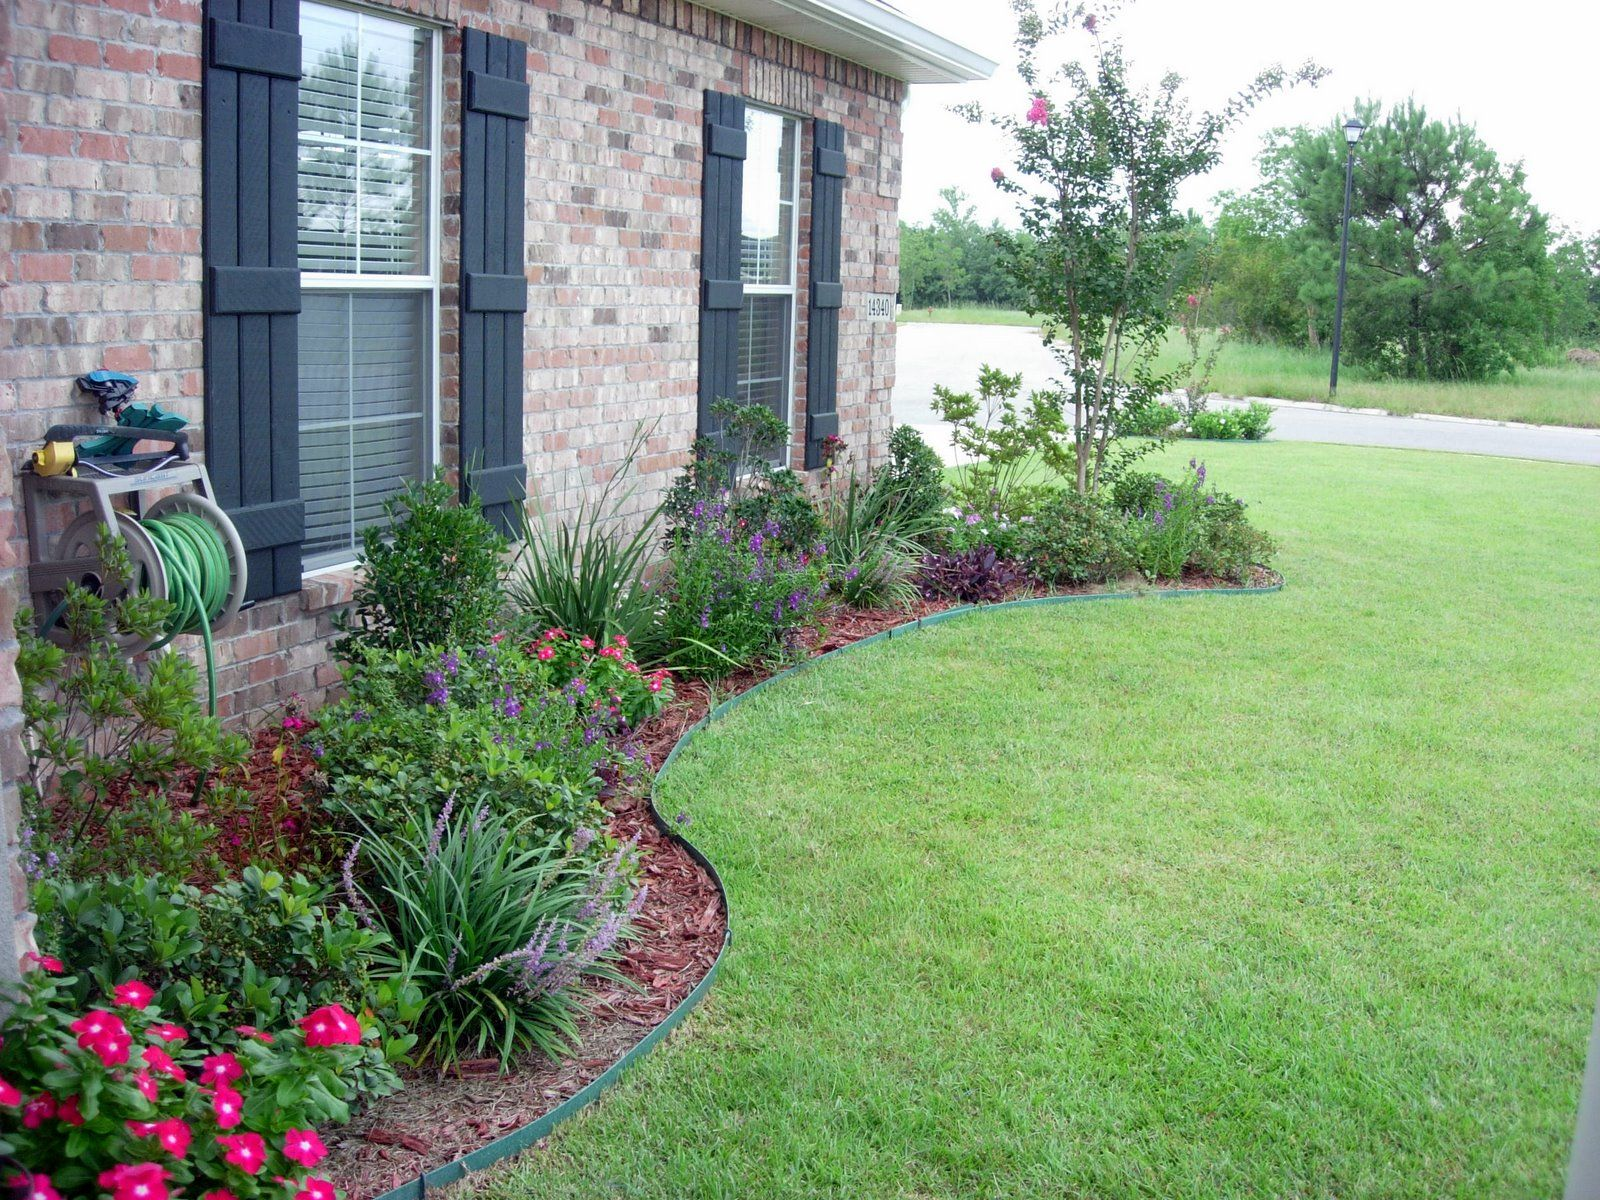 Flower garden design ideas - Flower Bed Designs For Front Of House Use Shrubs Small Trees To Form The